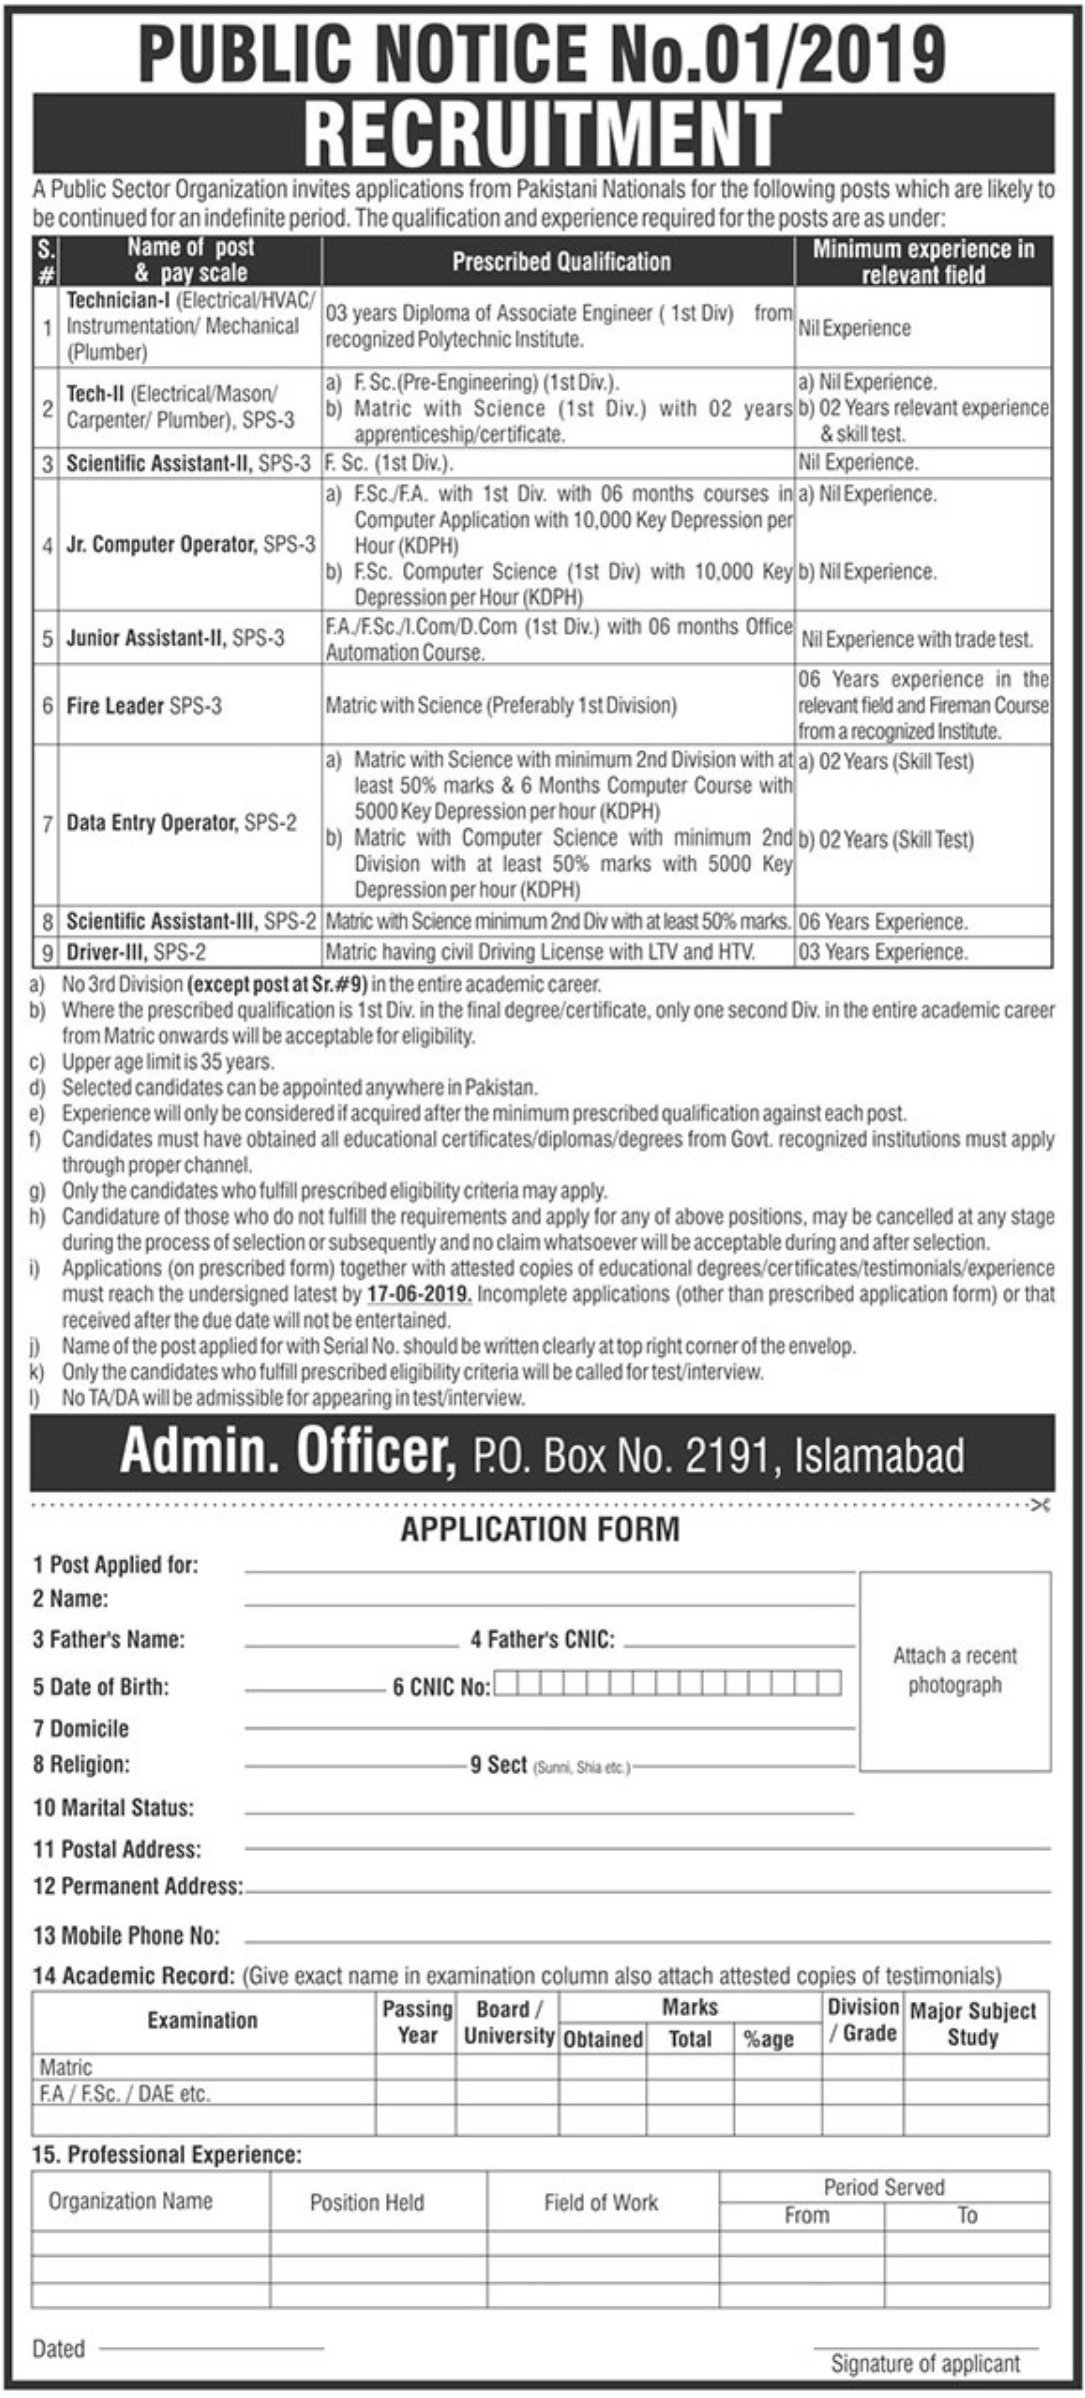 Public Sector Organization Jobs 2019 P.O.Box 2191 Islamabad